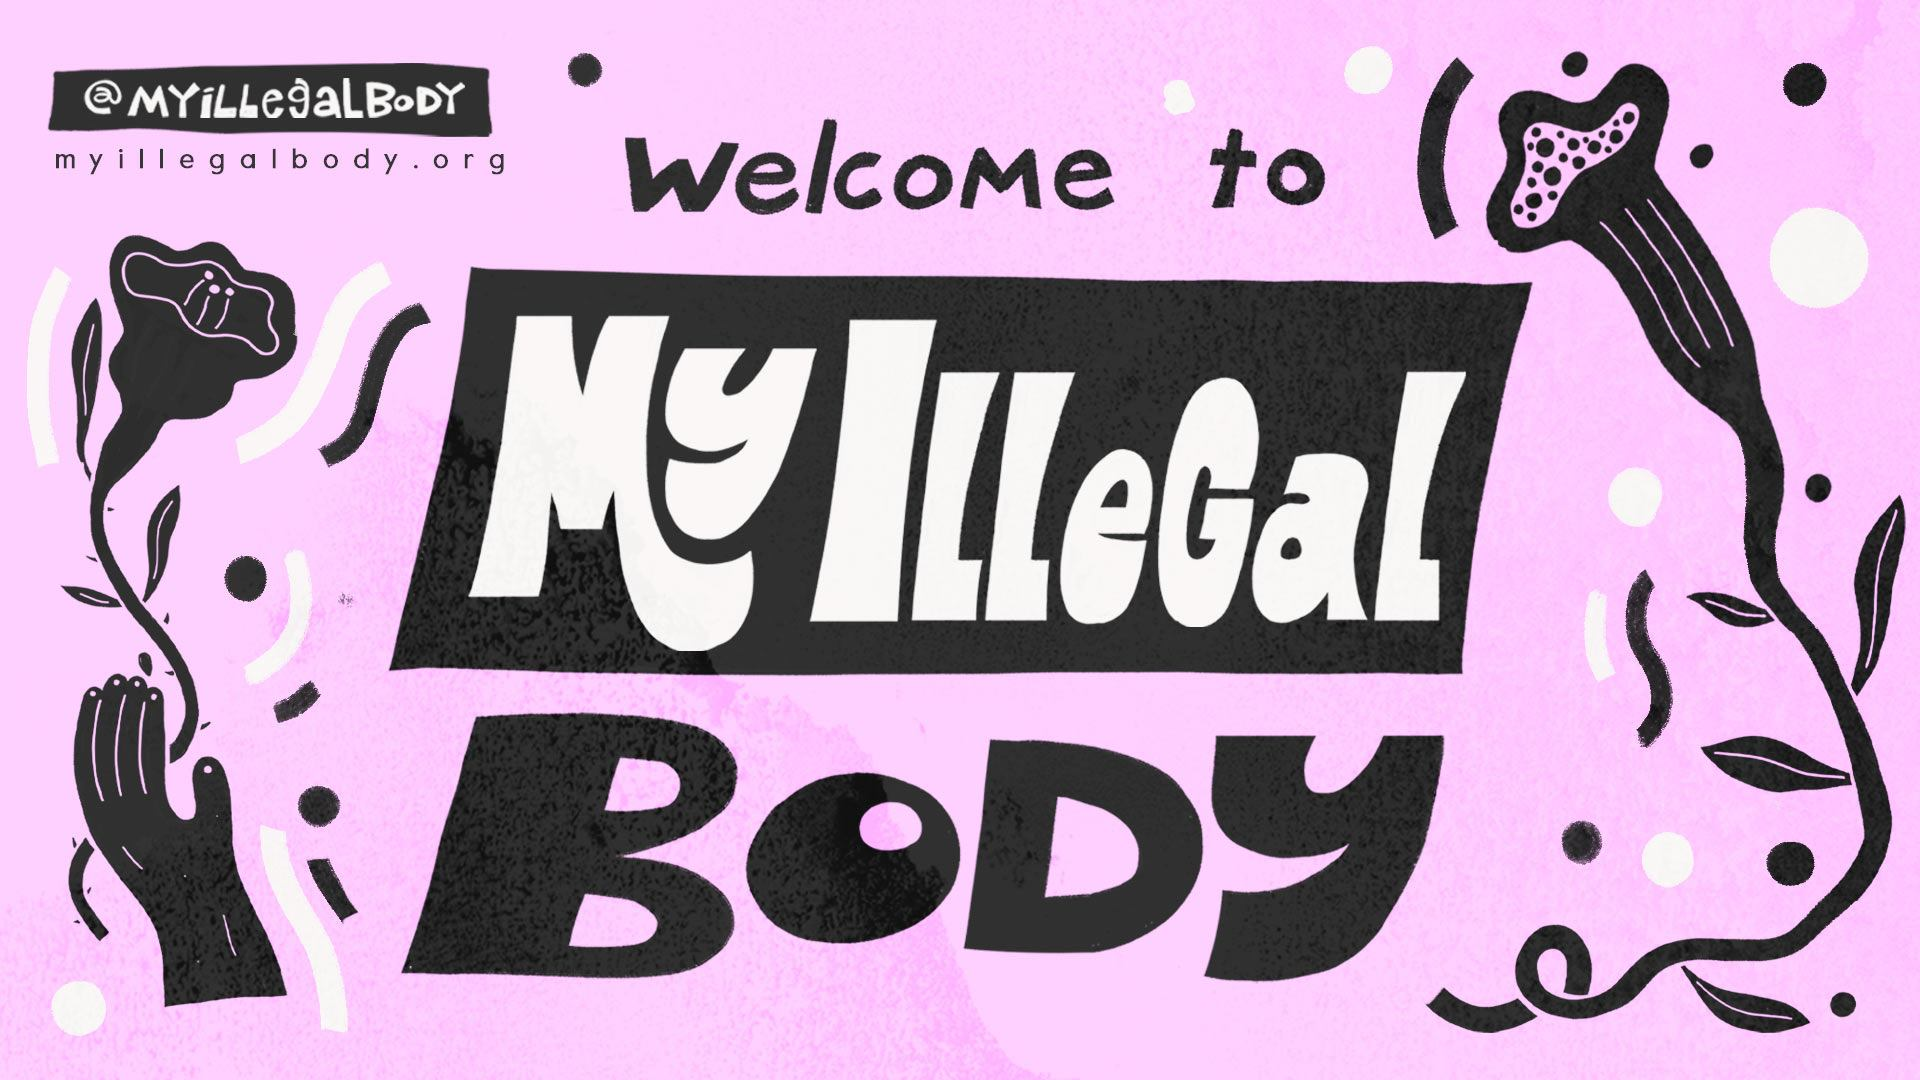 My Illegal Body – Non-profit Atlanta